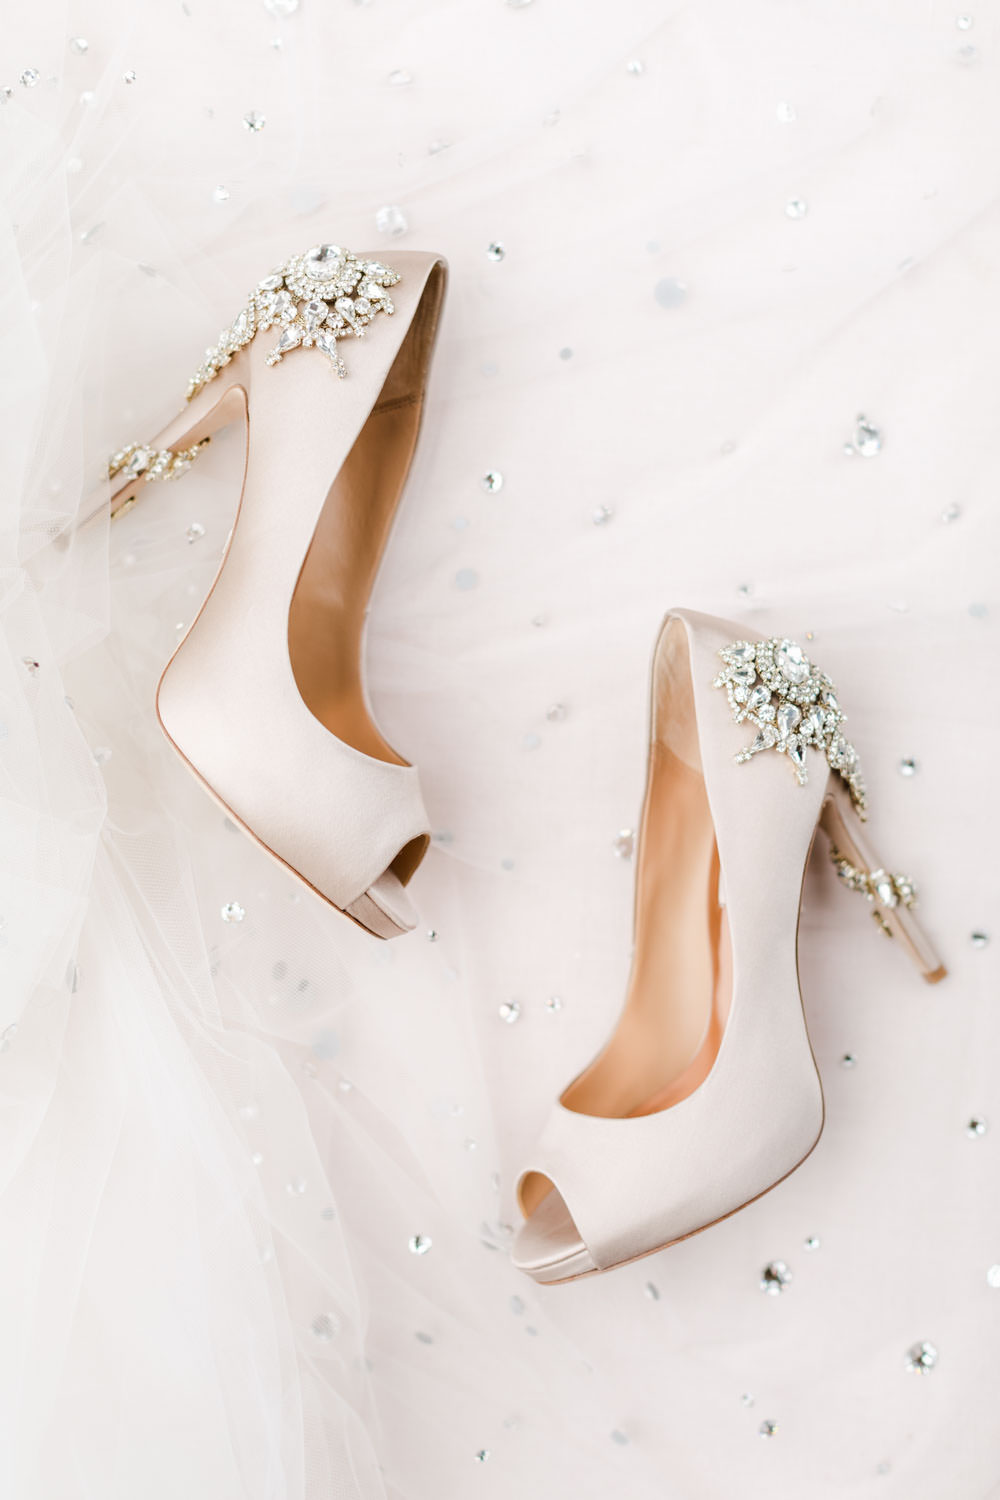 Blush bridal peep toe heels with jewel embellished heels, Cavin Elizabeth Photography